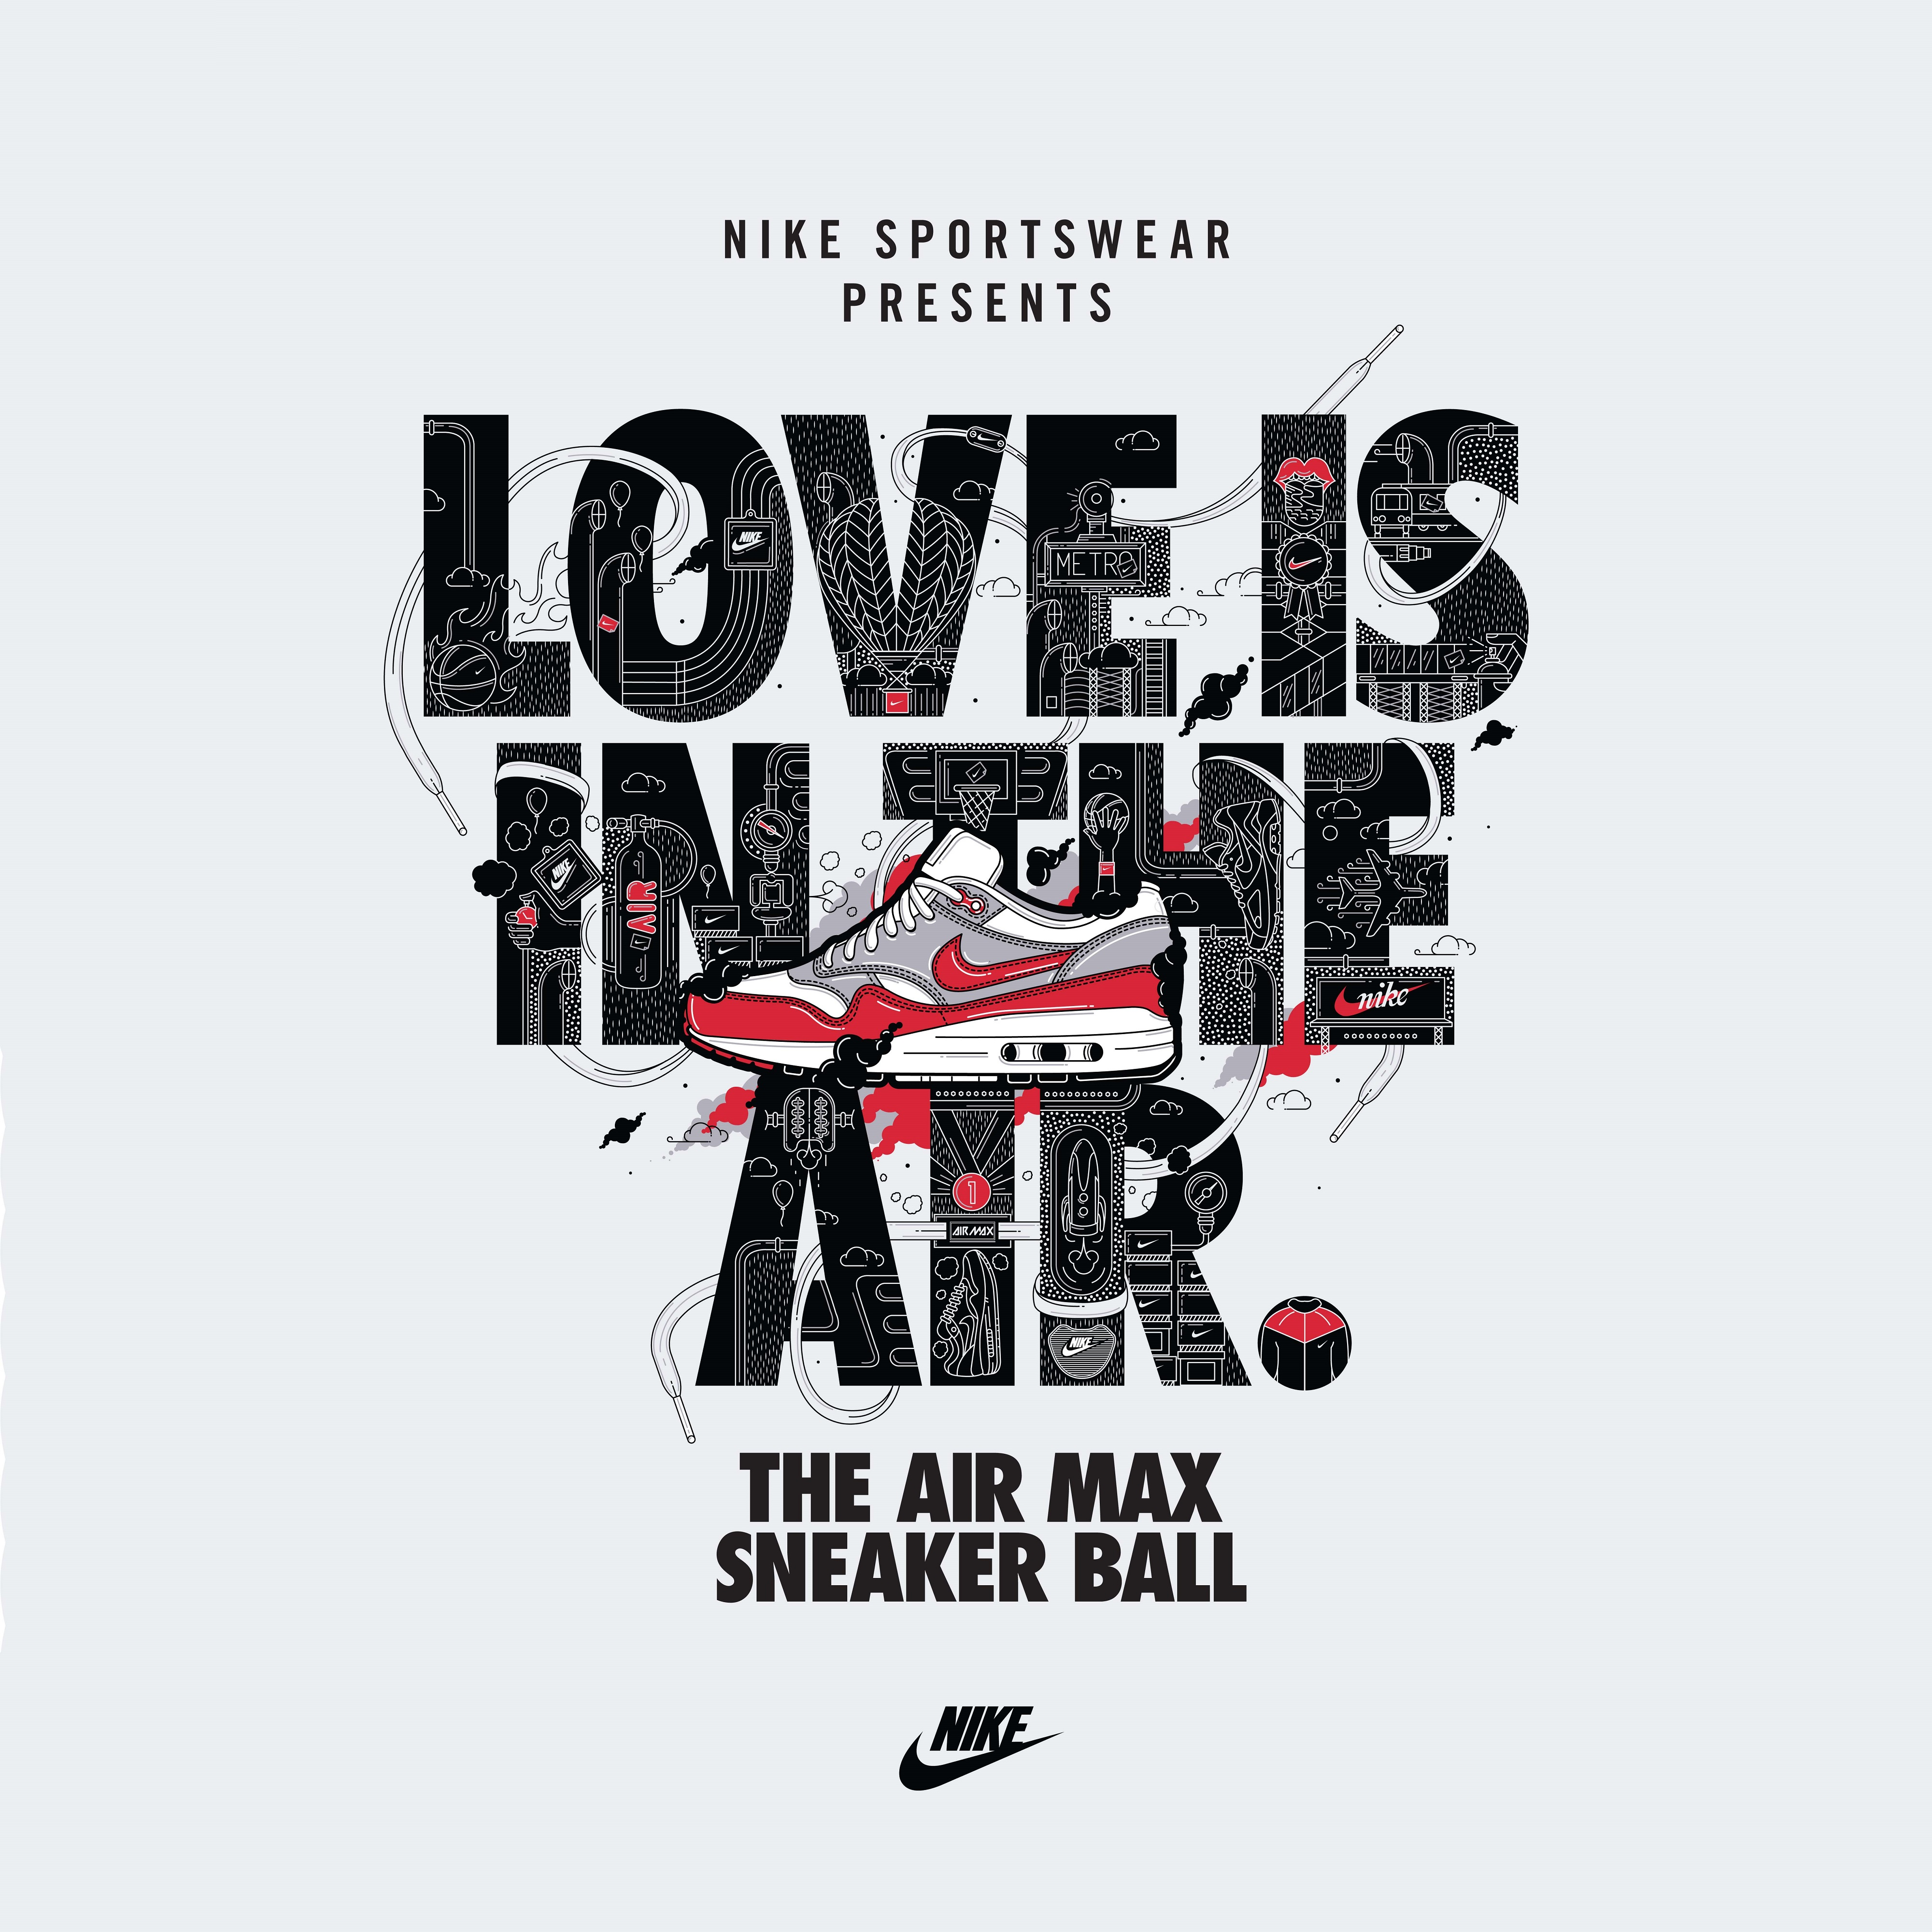 Welcome to The Air Max Sneaker Ball